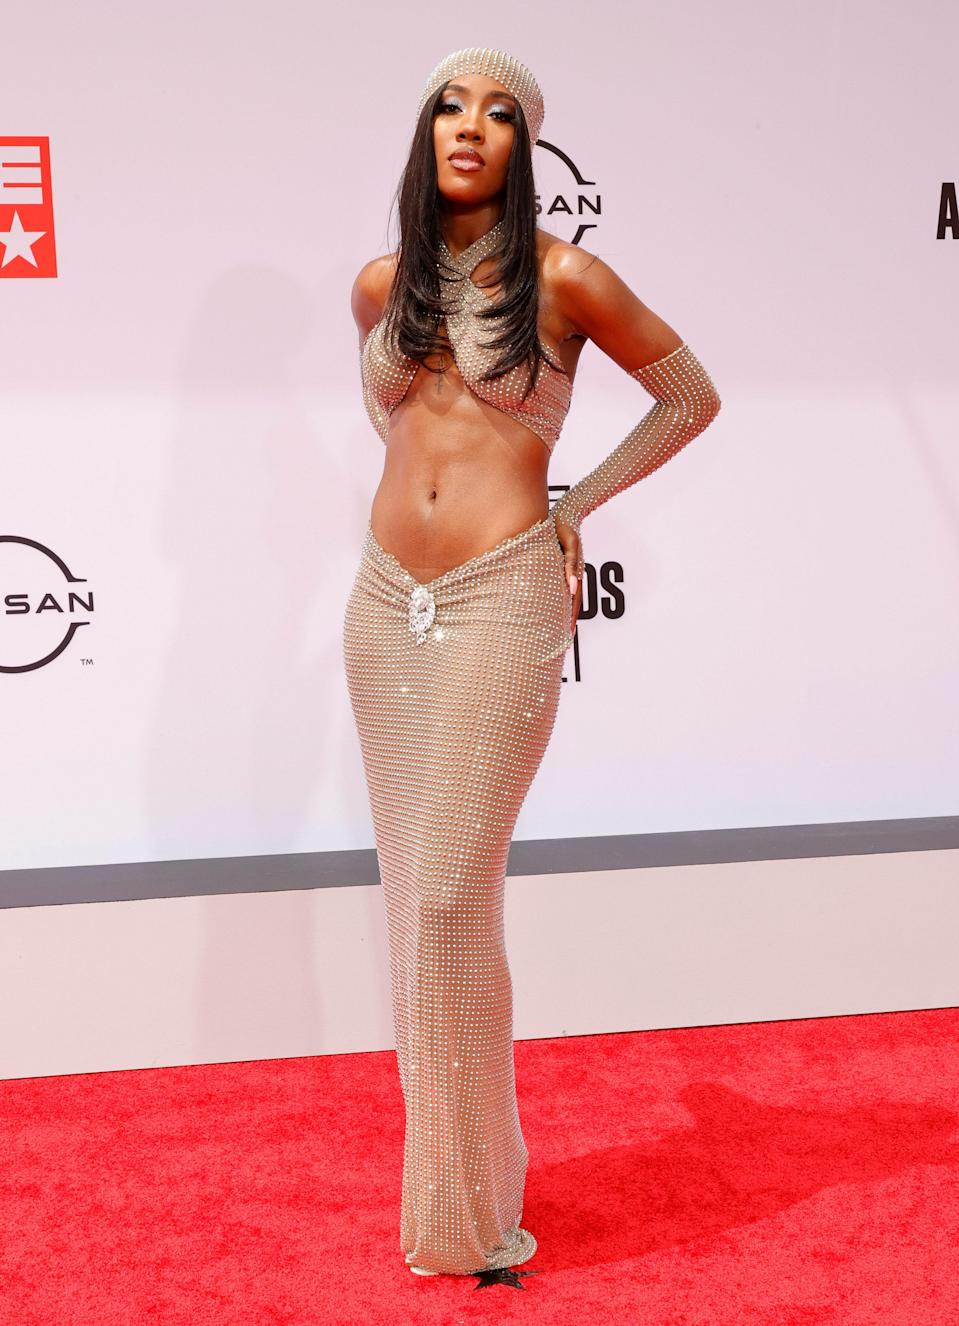 Styled by DaVonte Blanton, Sevyn was serving <em>major</em> early 2000s vibes with her outfit from La Roxx.